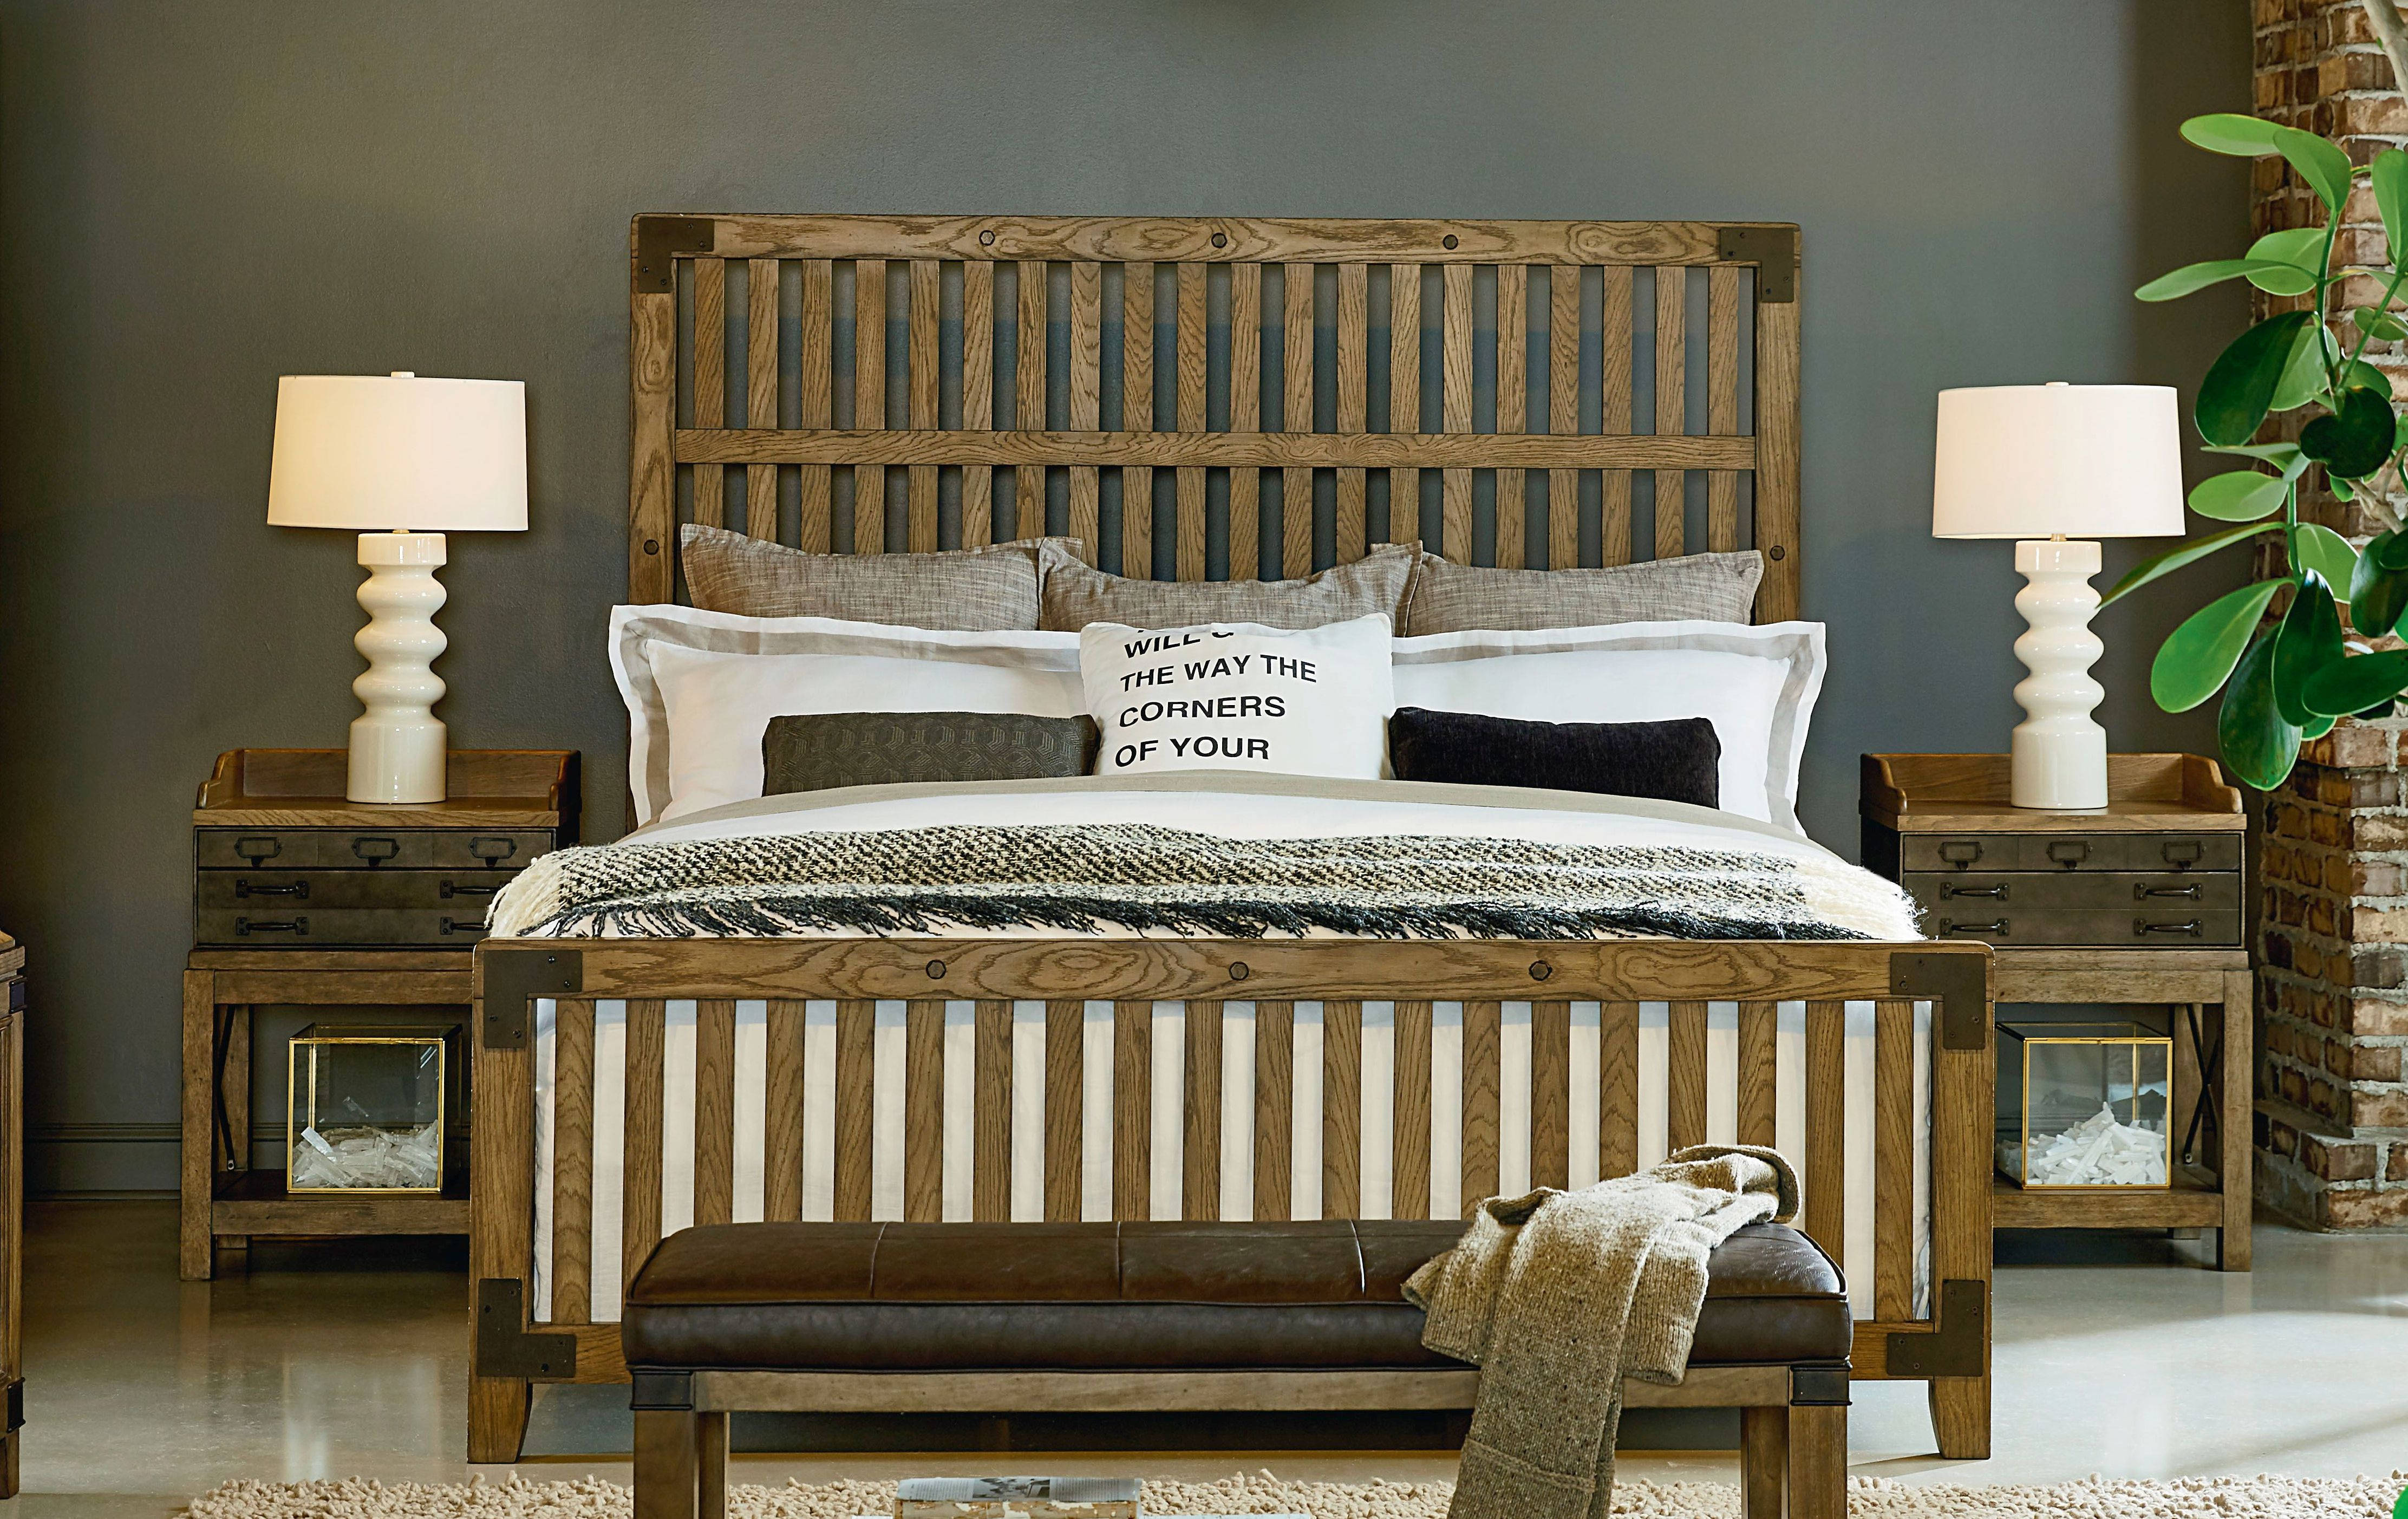 Legacy Furniture Metalworks 2pc Bedroom Set with Cal King Bed | The ...